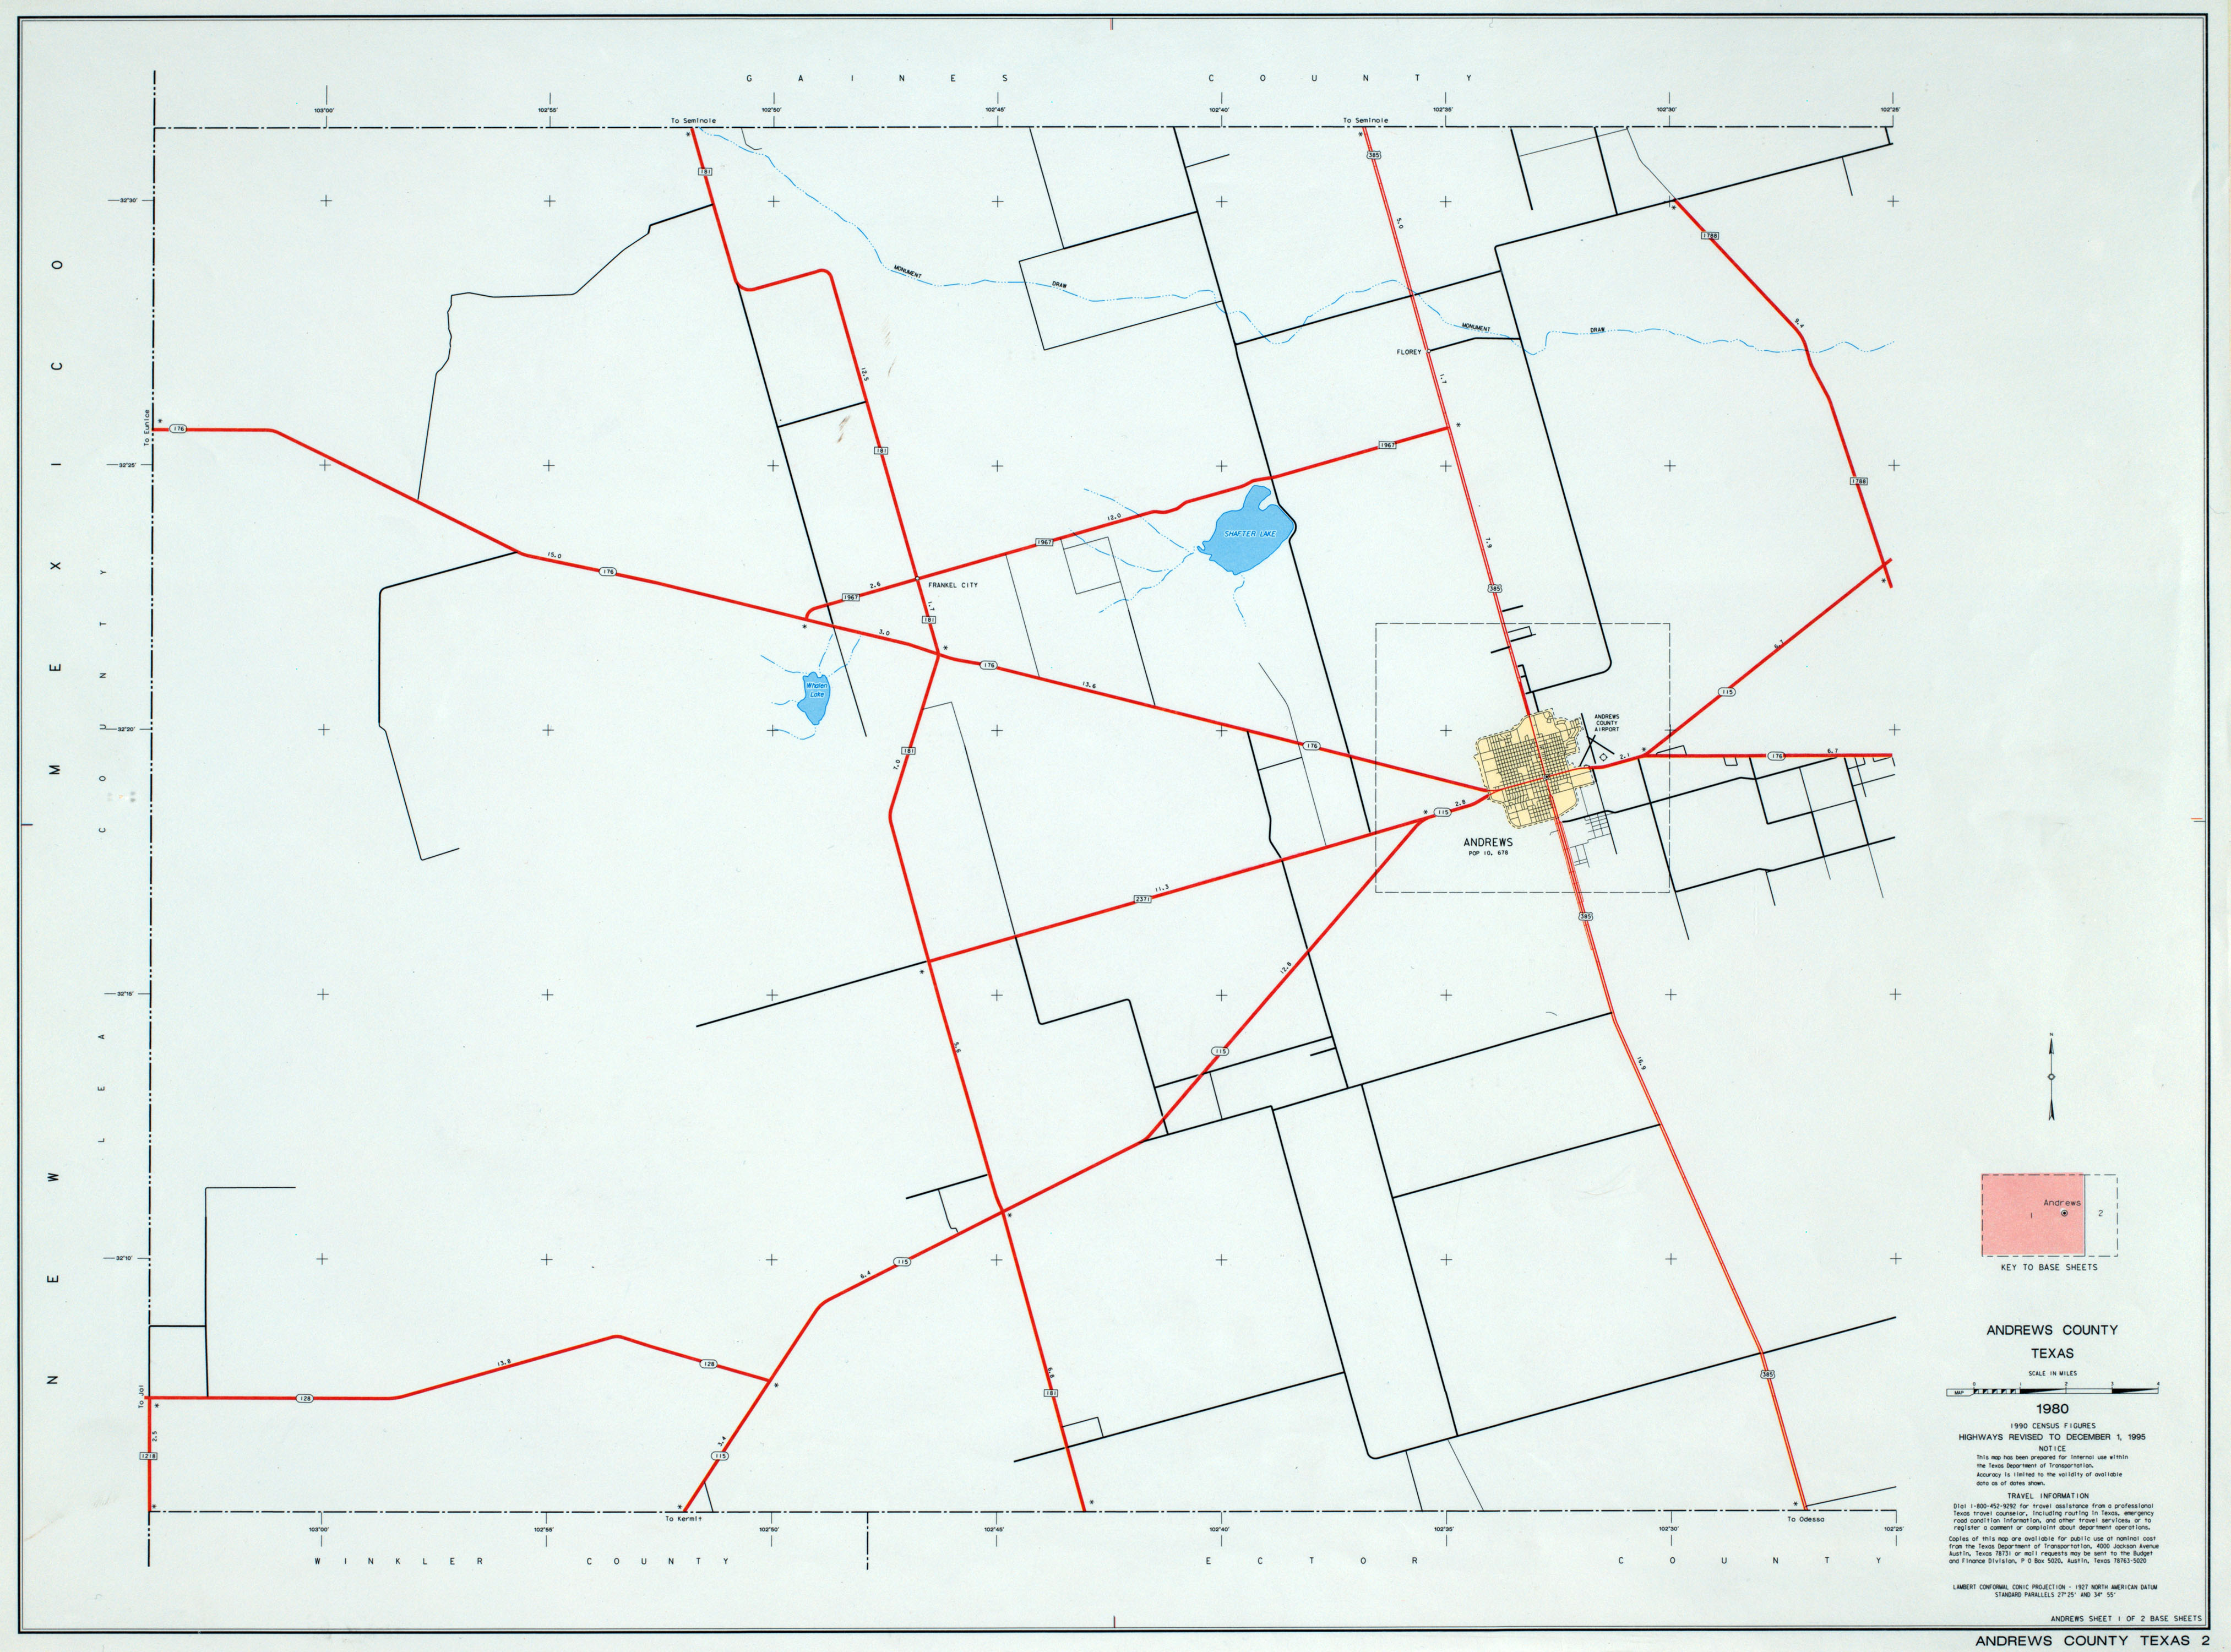 Texas County Highway Maps Browse - Perry-Castañeda Map ... Andrews County Texas